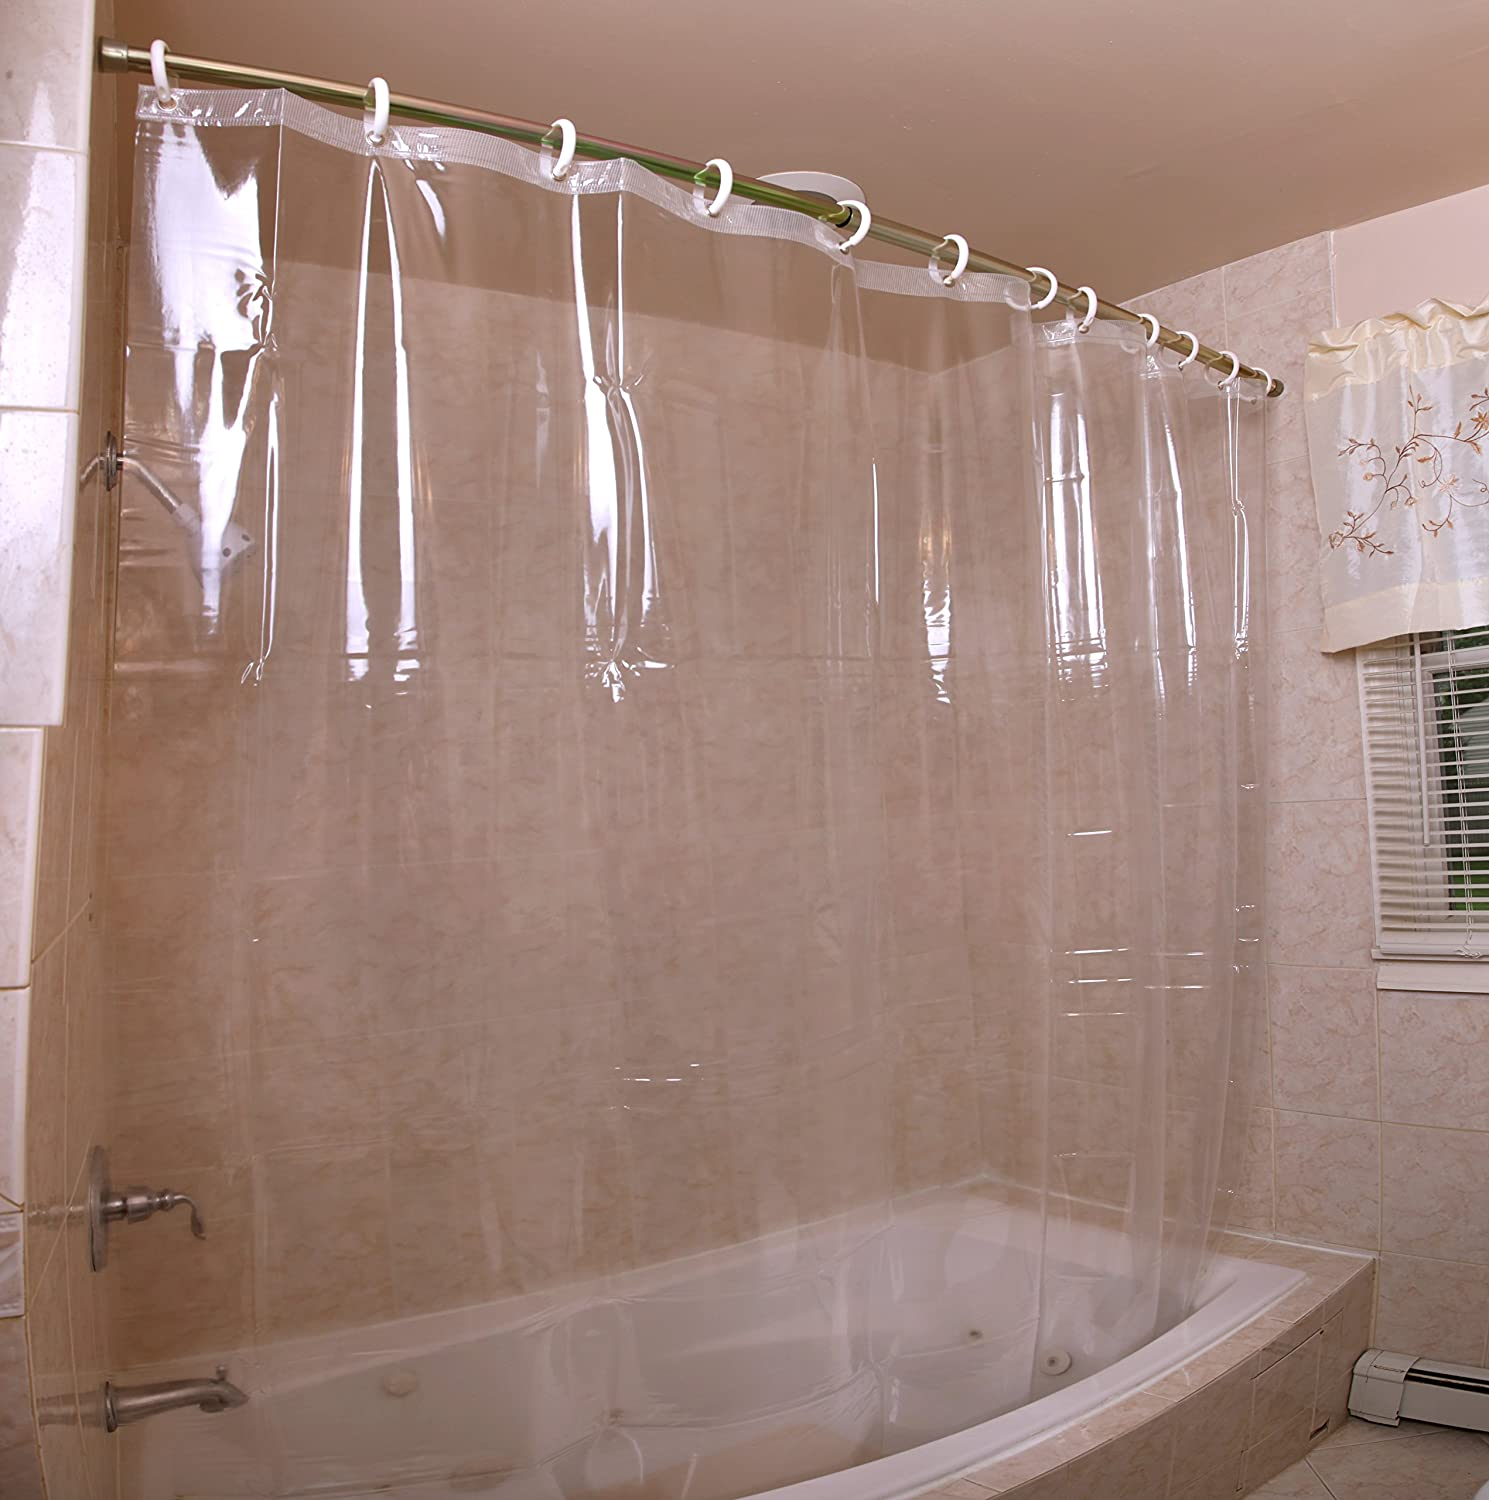 Curtains Ideas best shower curtain : BEST TOP RATED SHOWER CURTAINS - HAPPY LIVING